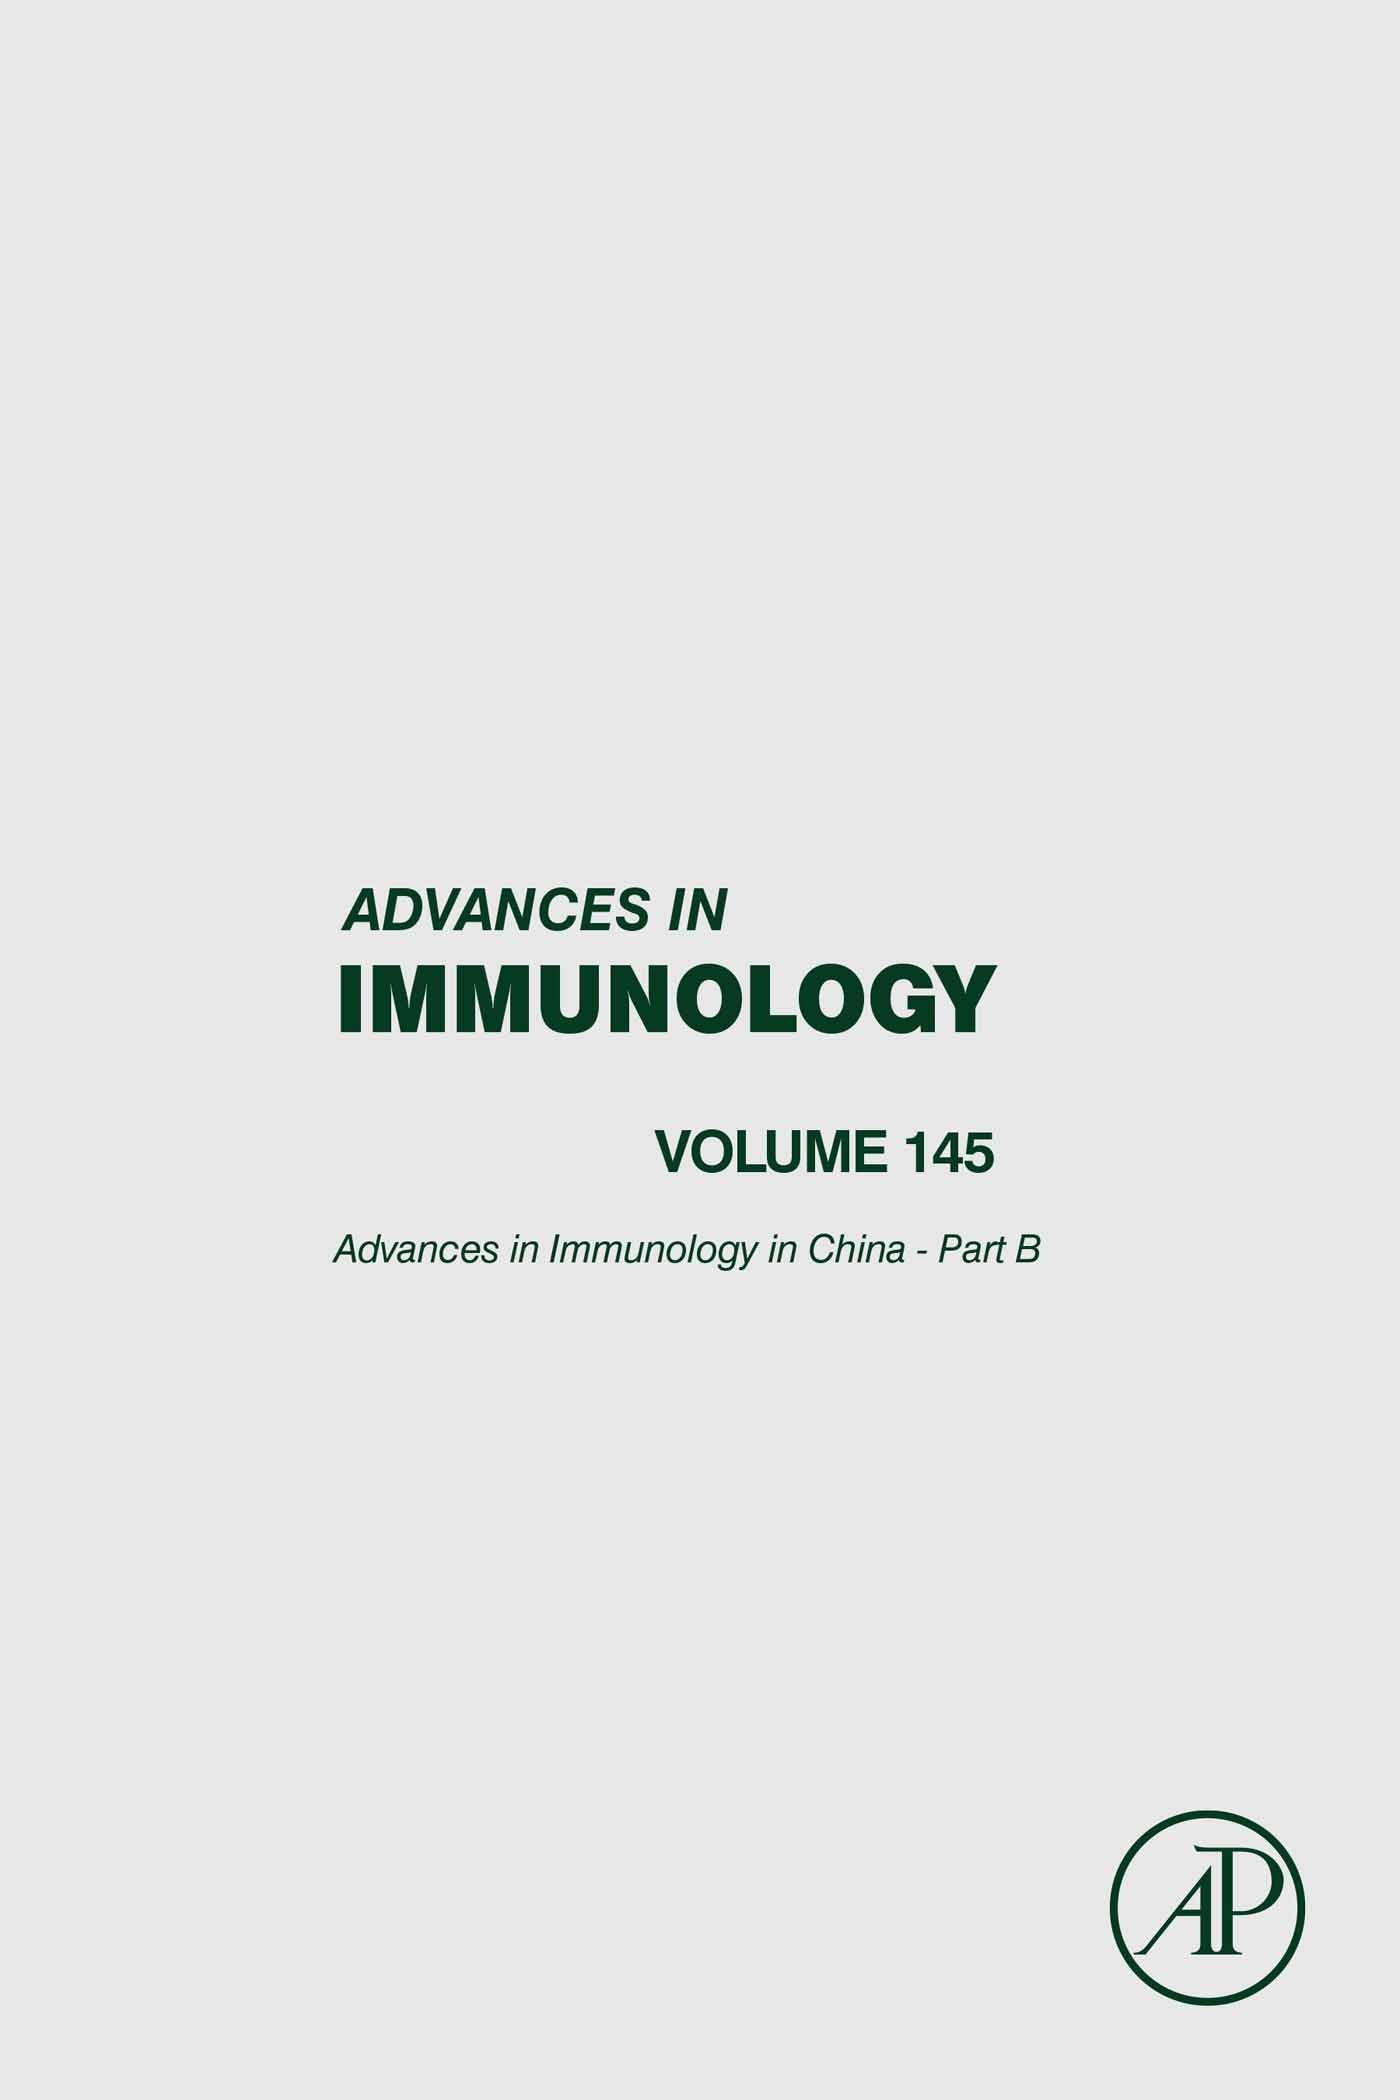 Advances in Immunology in China - Part B